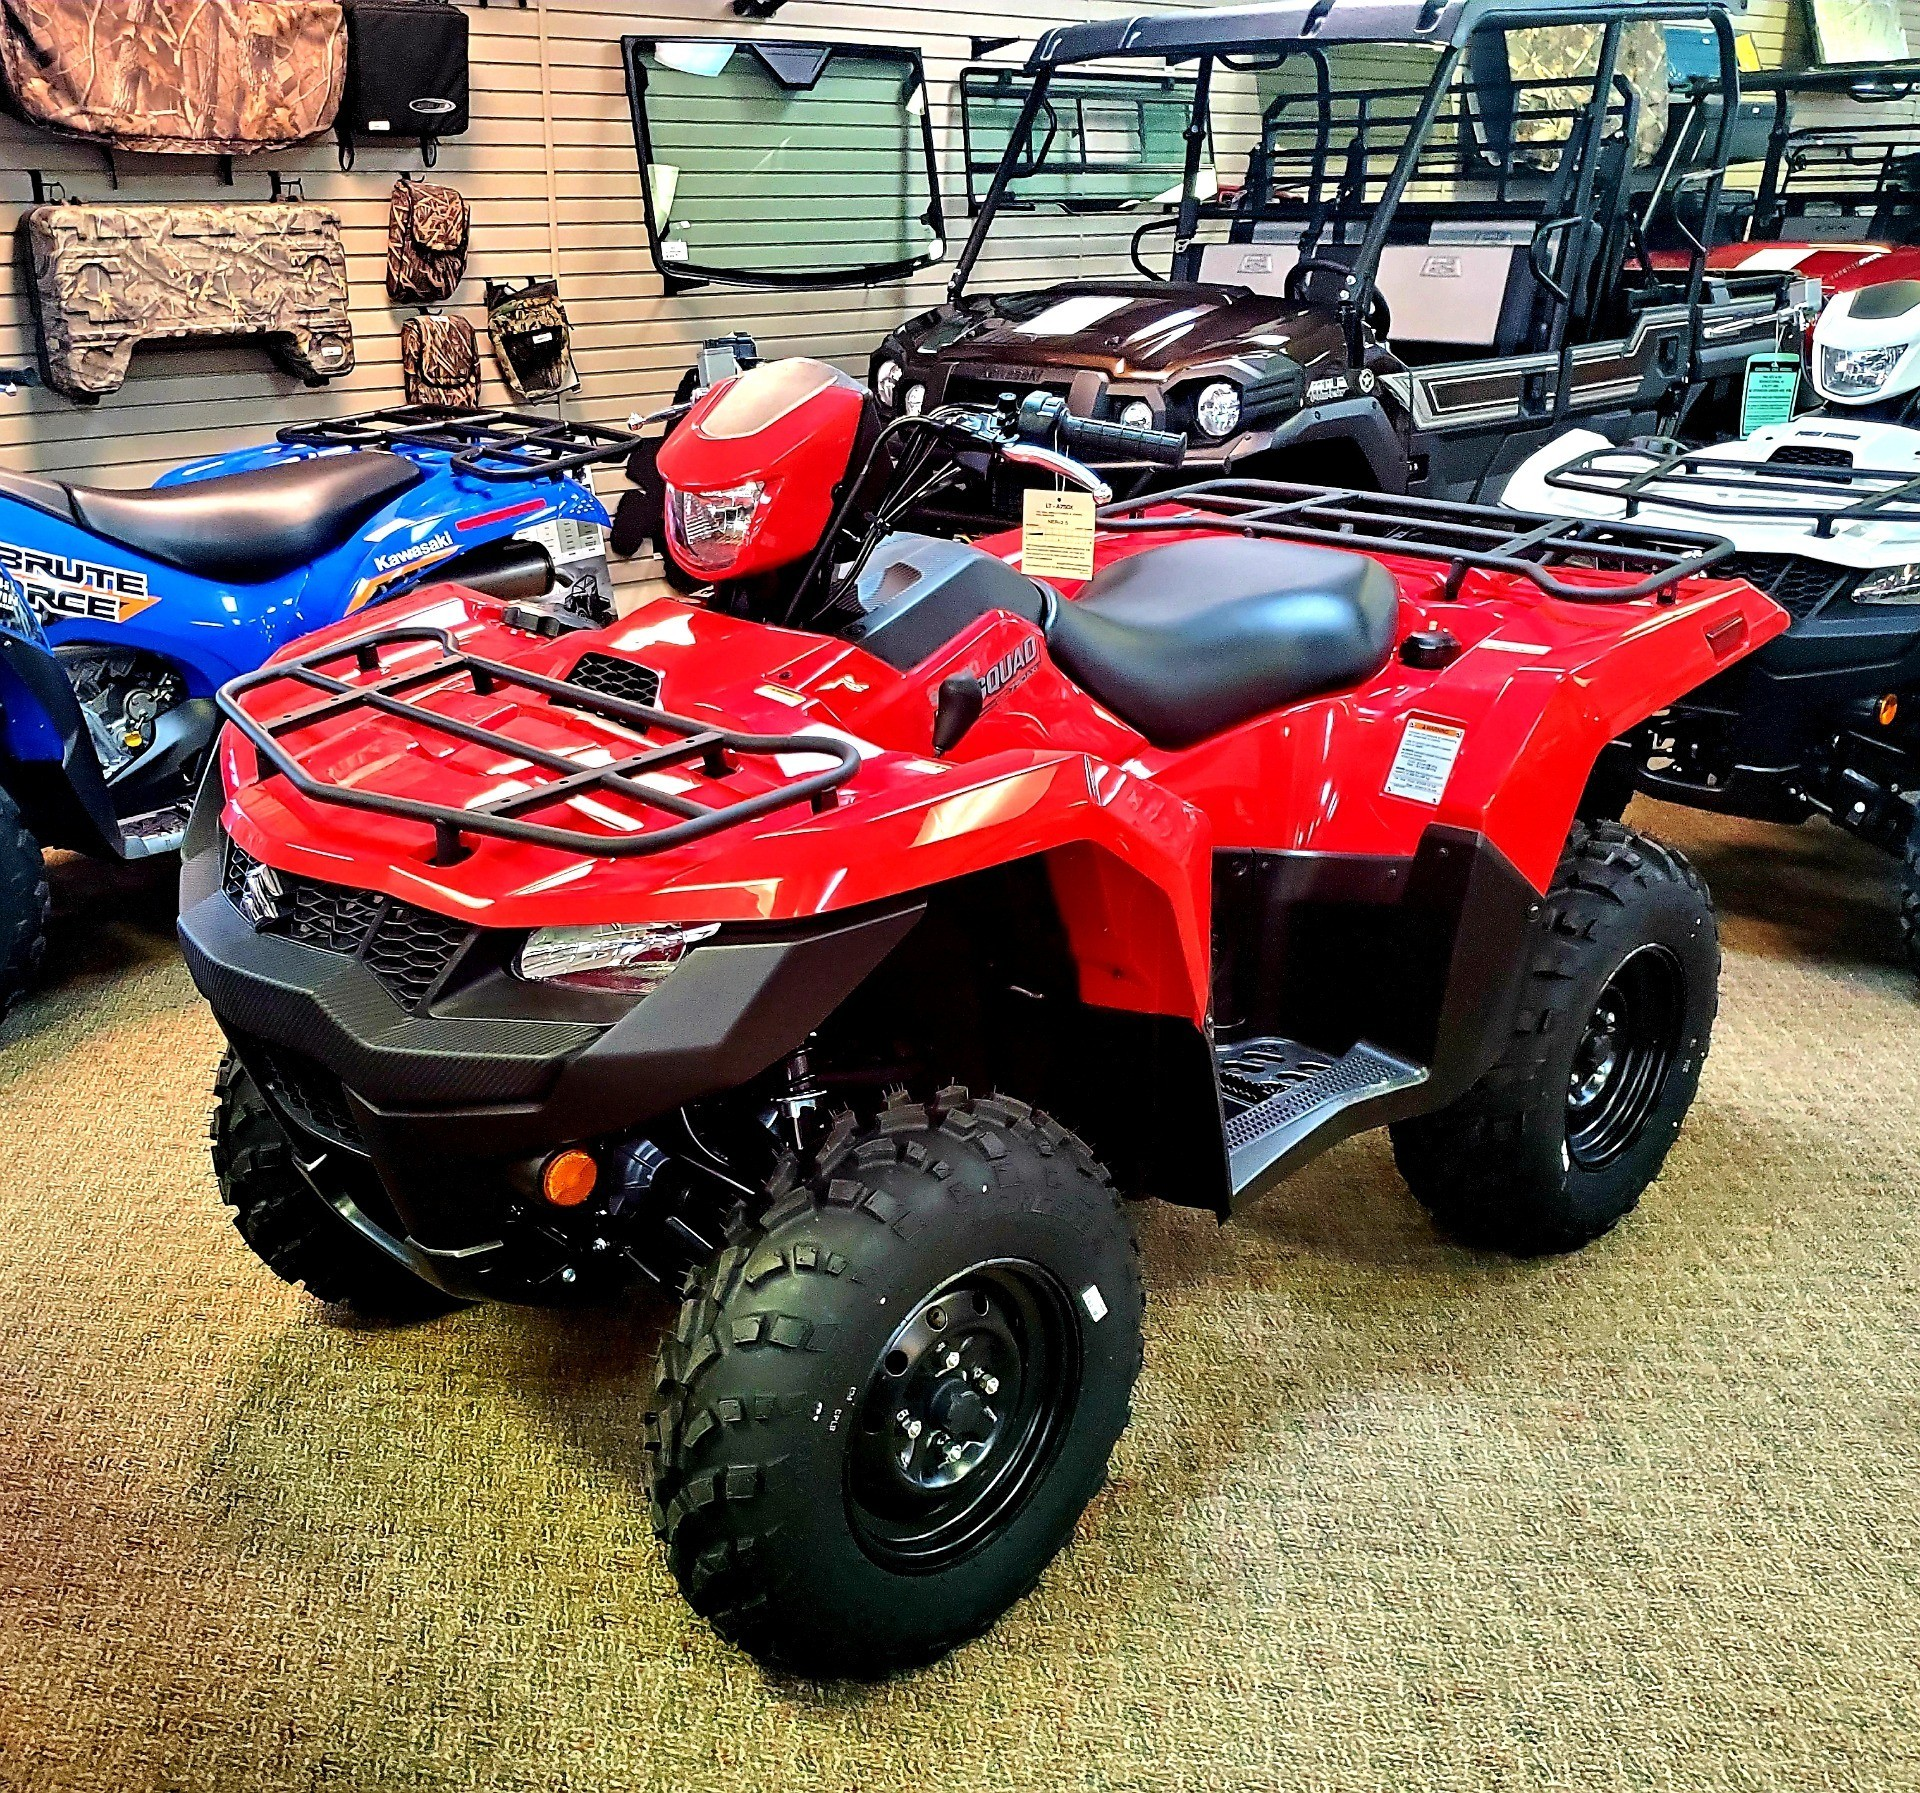 2020 Suzuki KingQuad 750AXi in Jackson, Missouri - Photo 1